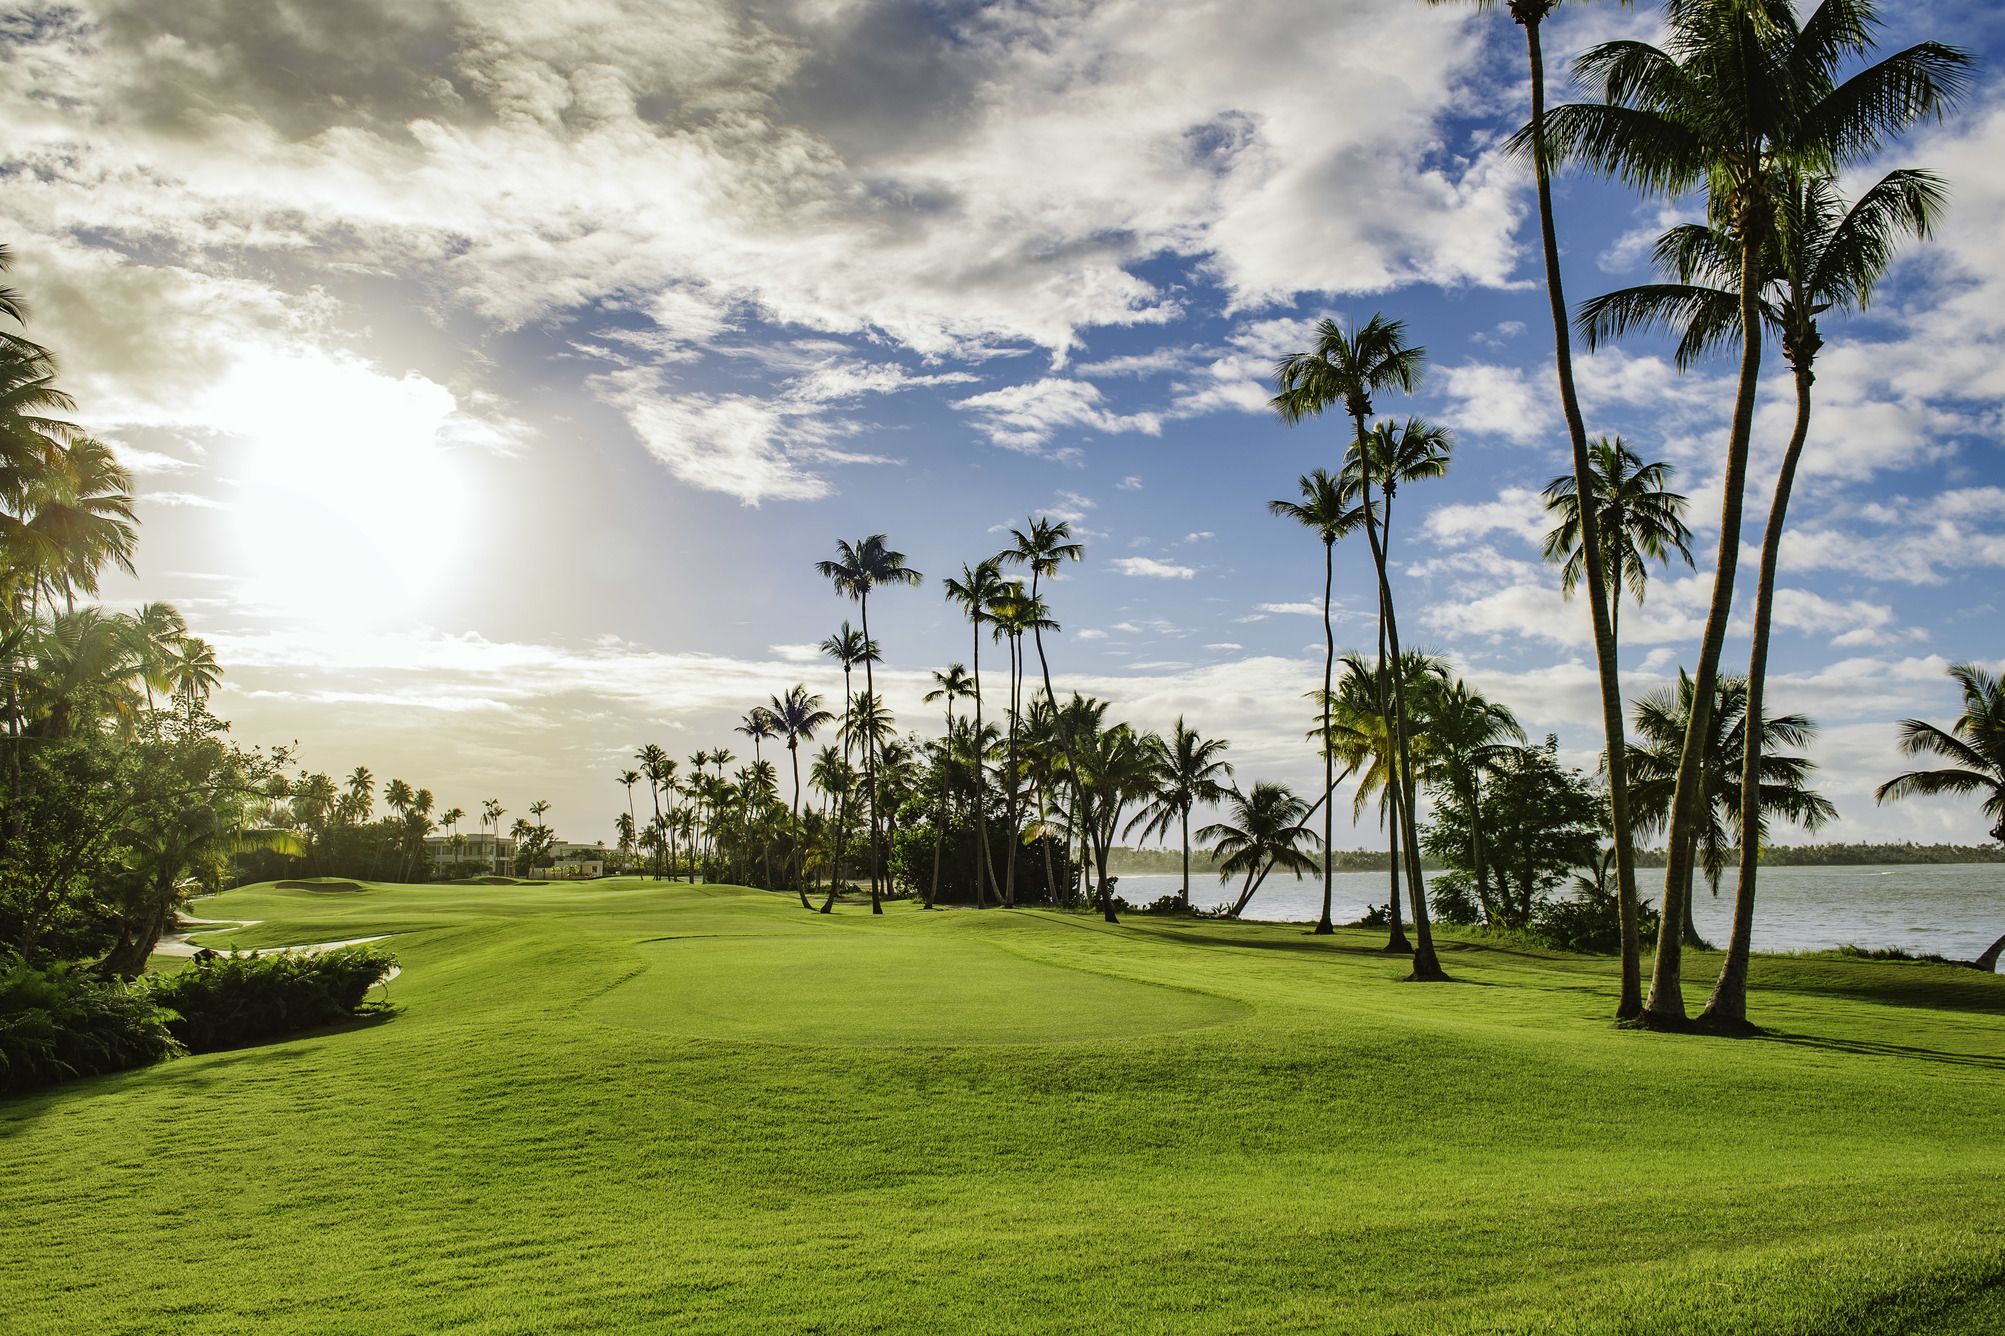 puertoricoThe St. Regis Bahia Beach and Golf Resort No. 18 hole